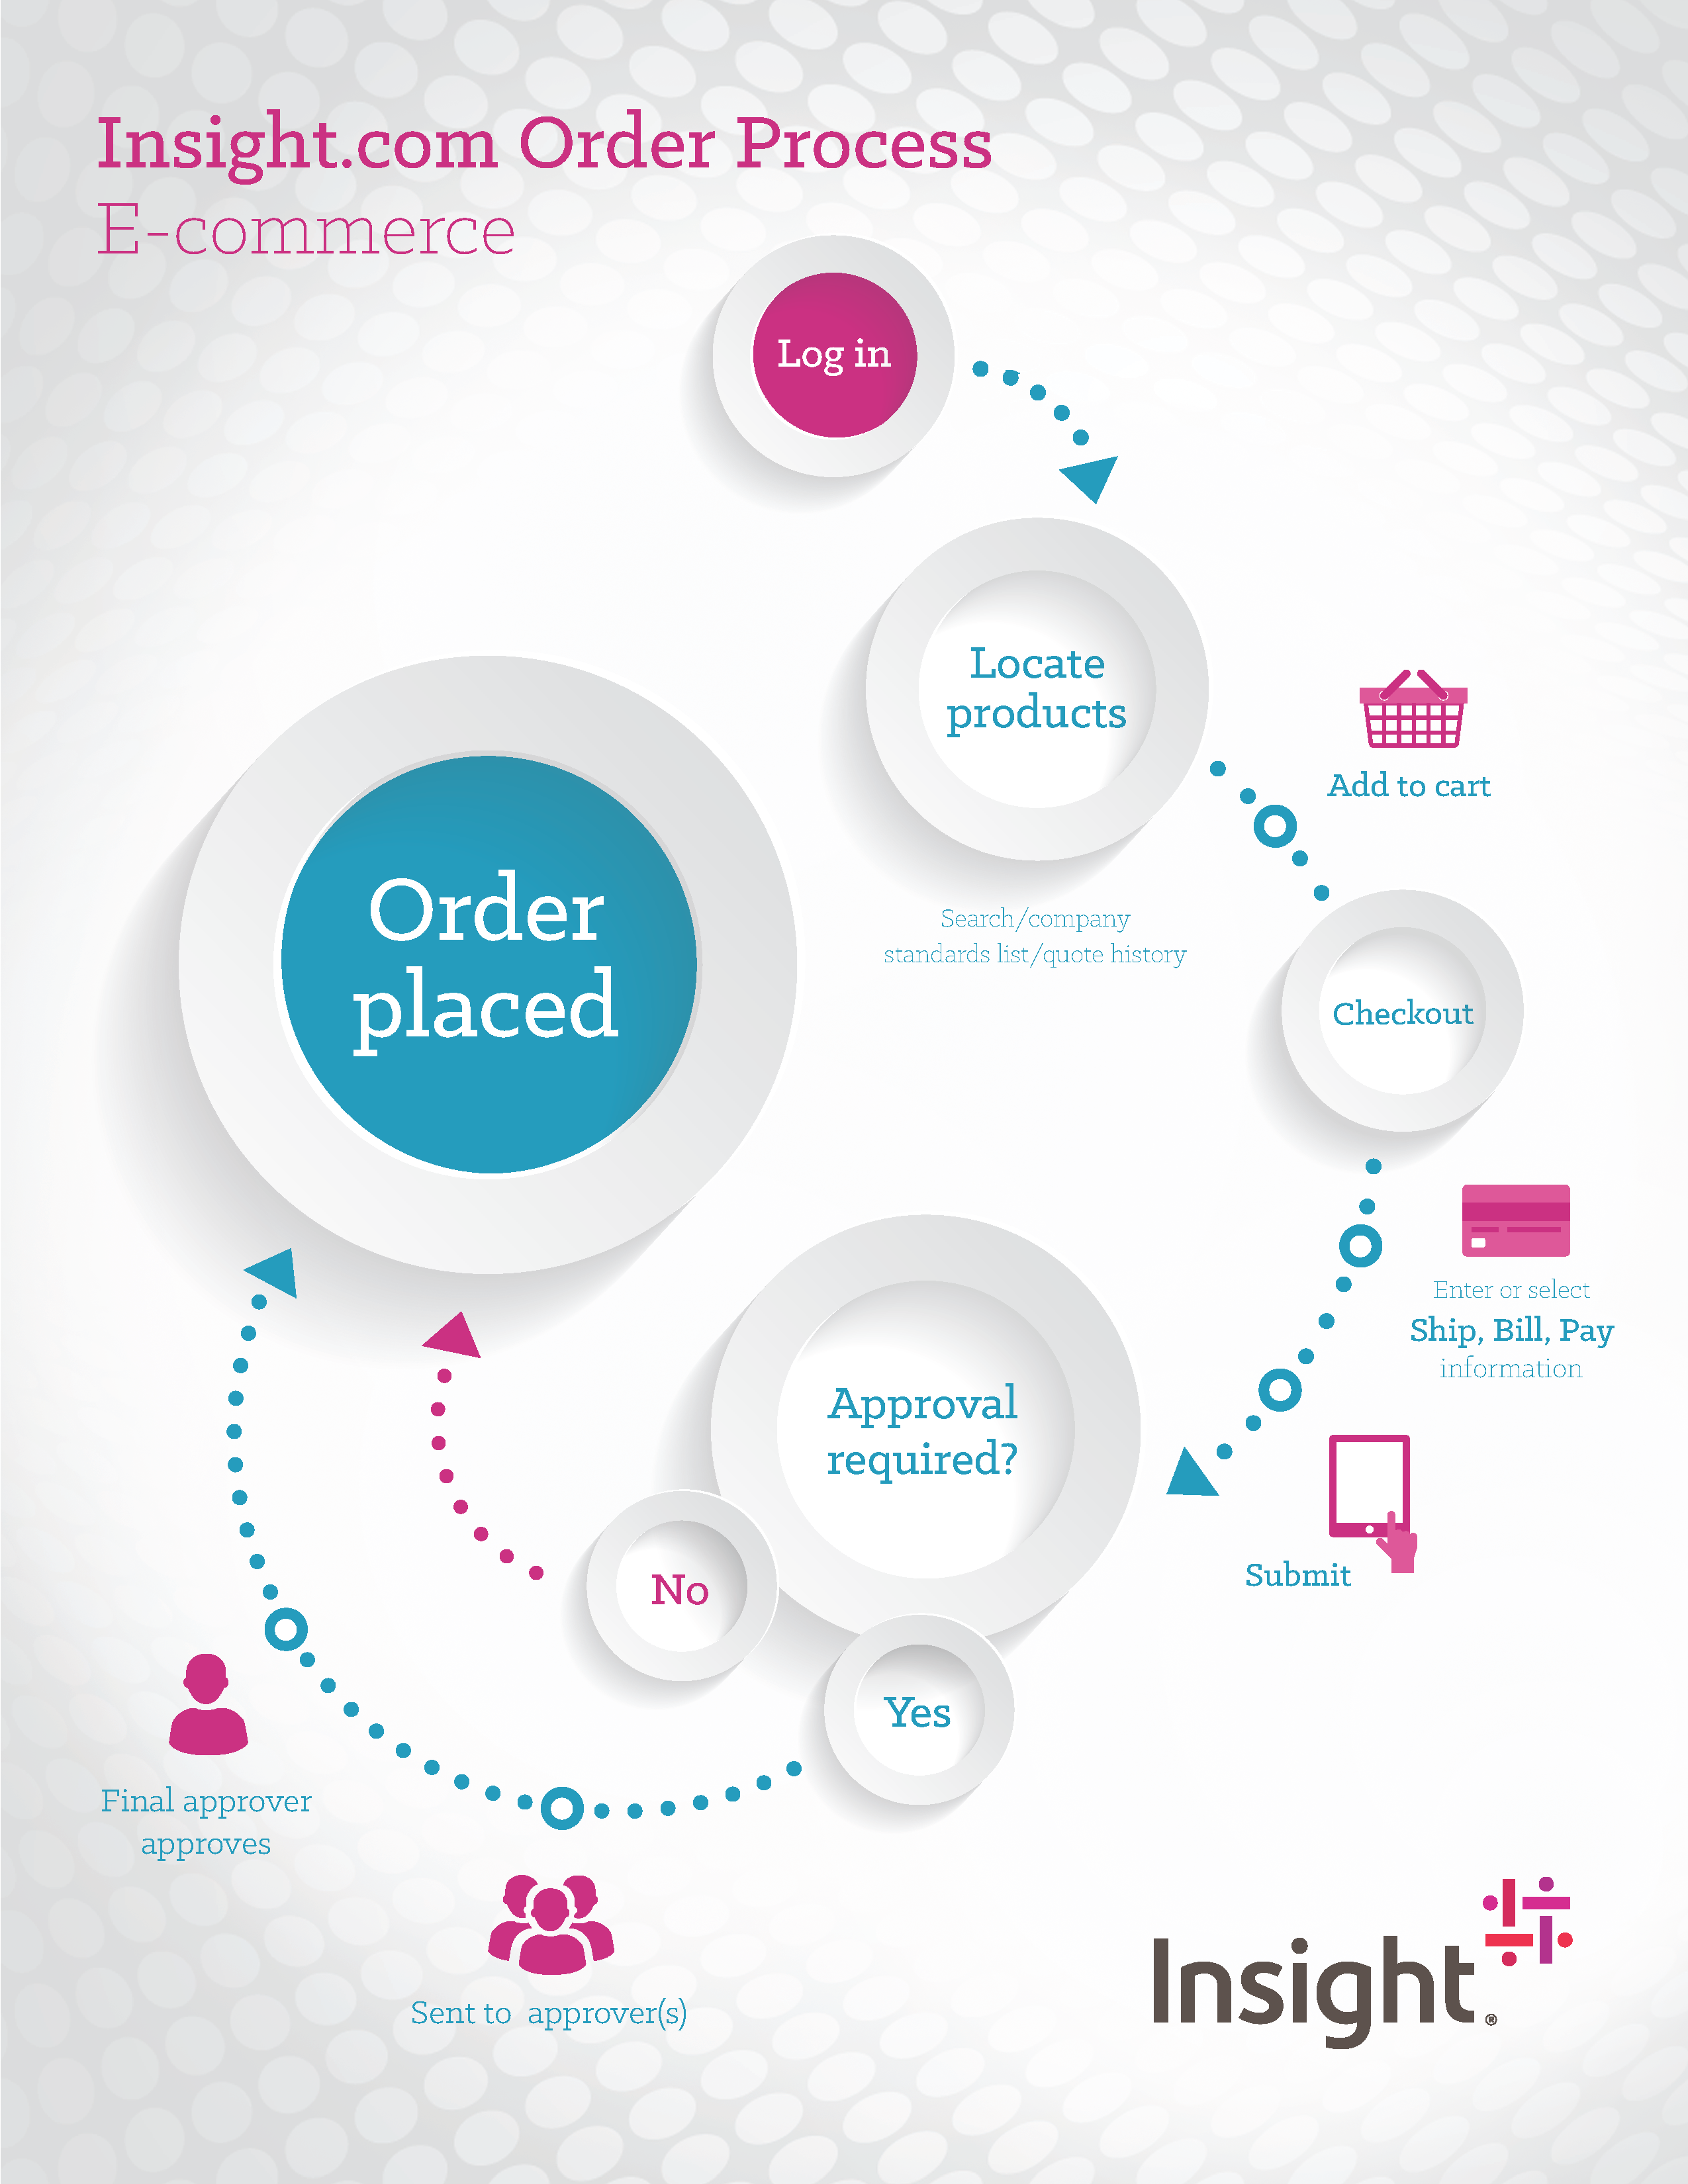 Illustration showing the Insight.com E-Commerce Order Process from Log in to check out to approval and placement of order using various payment and personal devices.